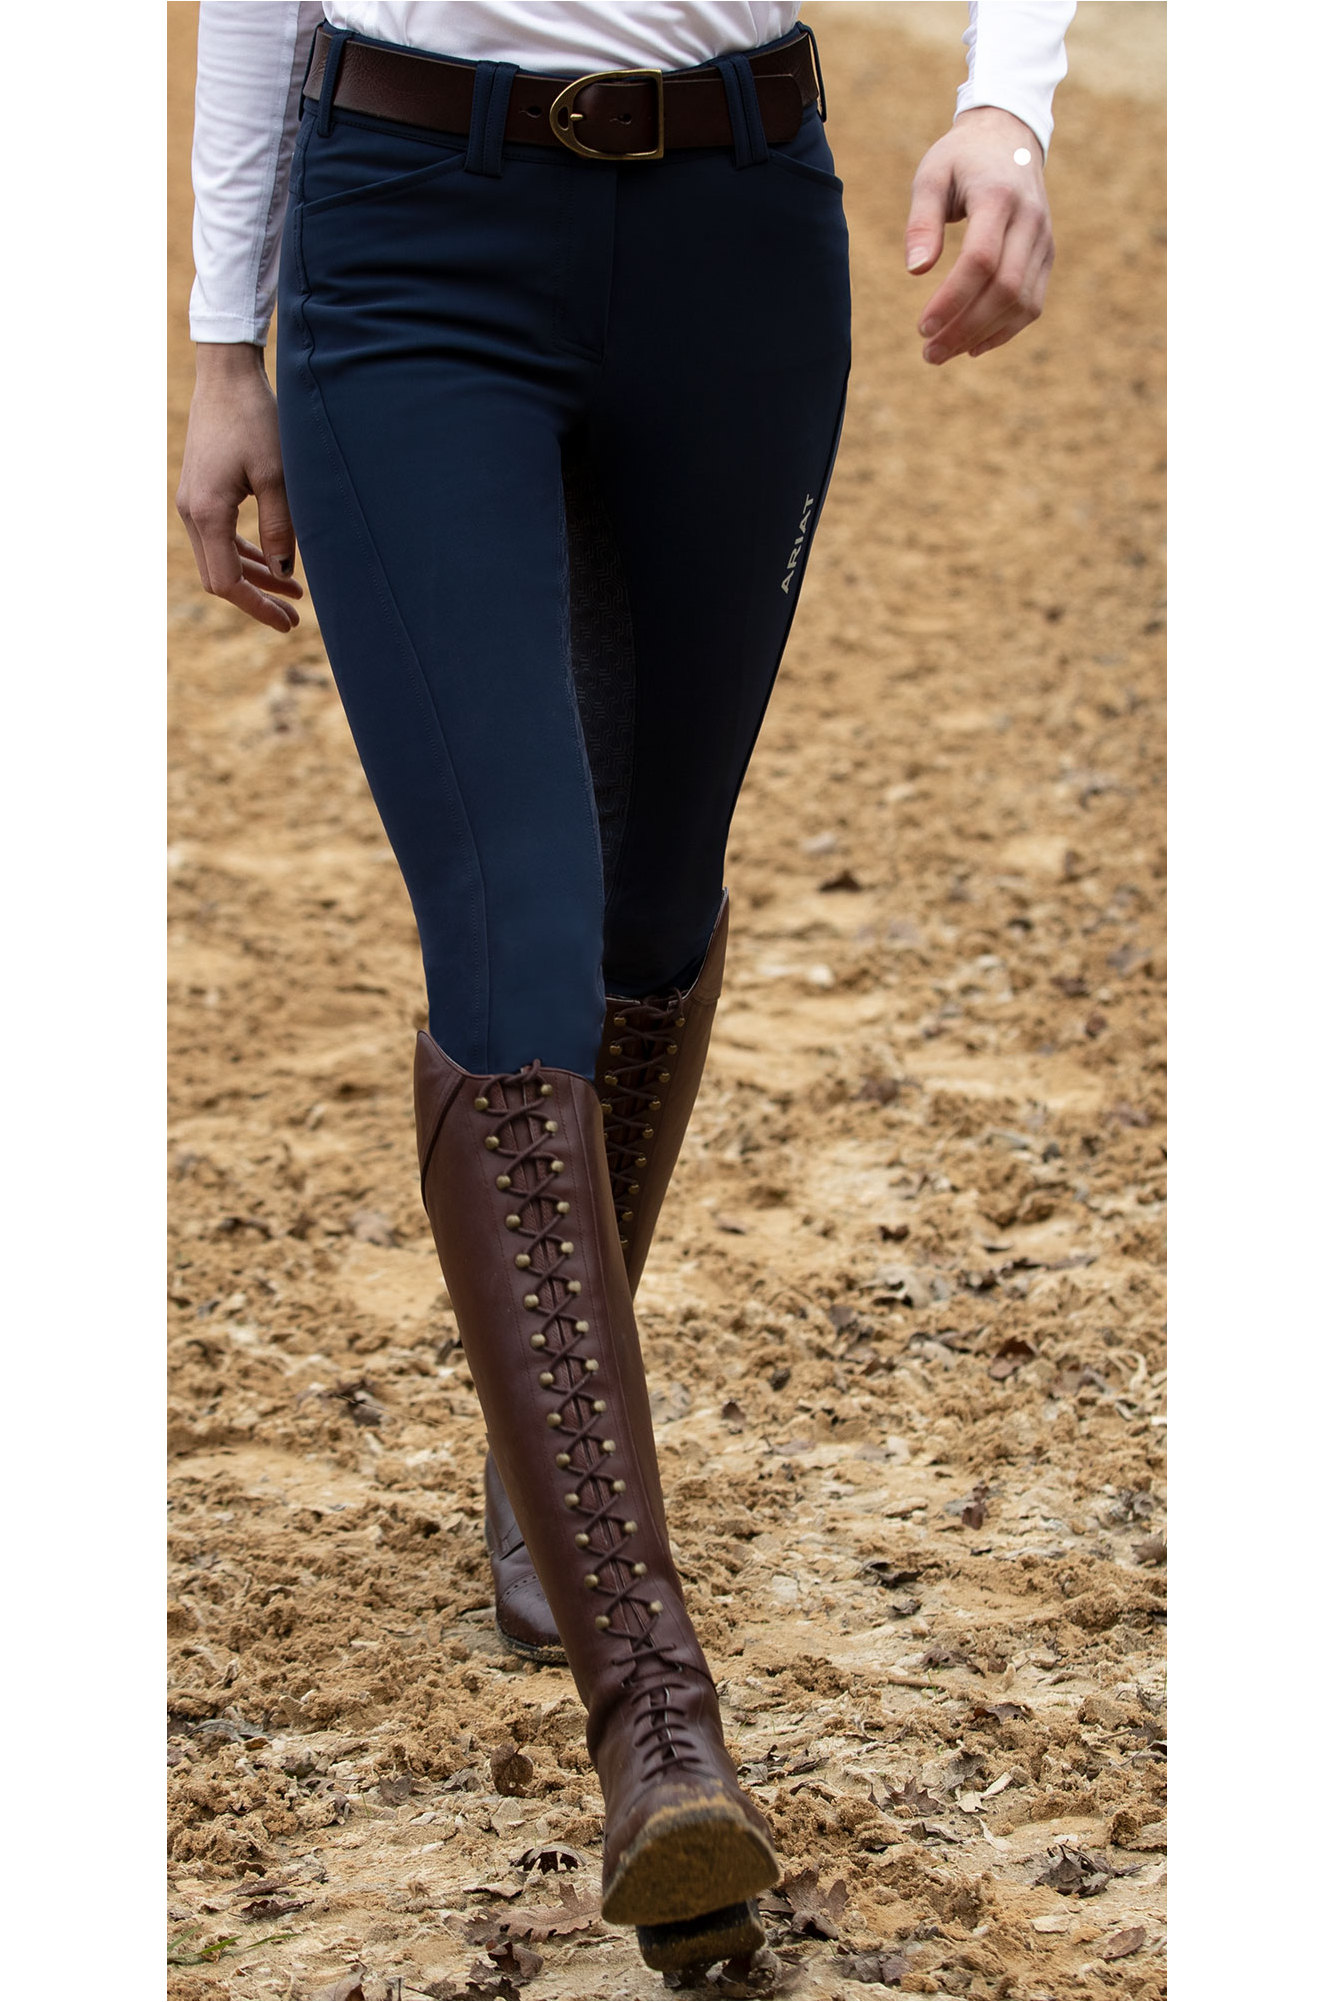 15672df36ab Ariat Womens Capriole Long Riding Boots Mahogany